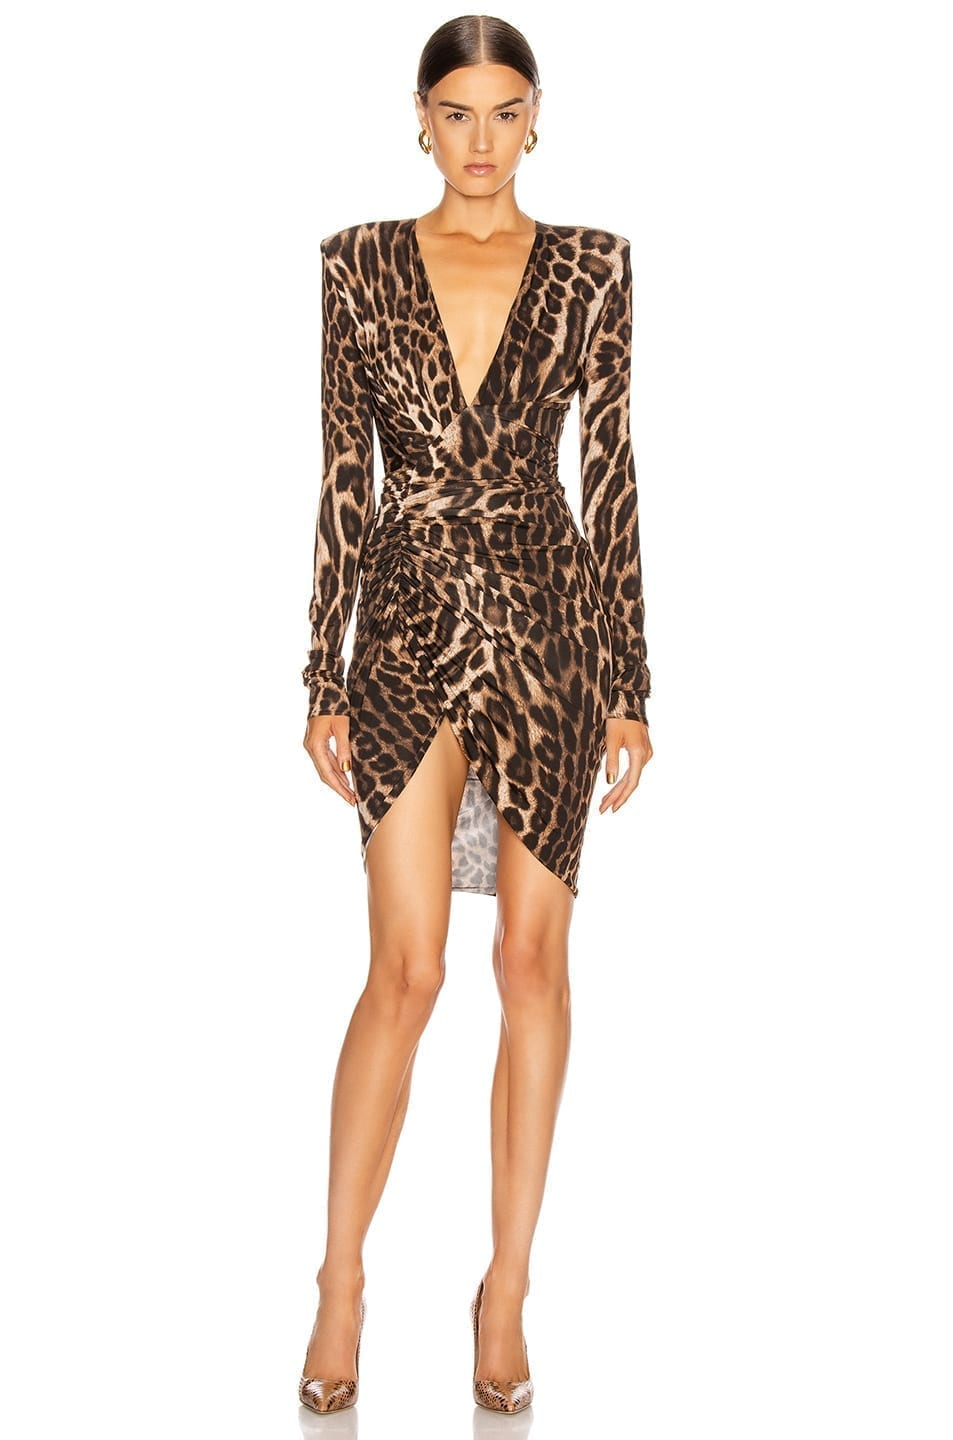 ALEXANDRE VAUTHIER For FWRD Plunging Ruched Mini Dress